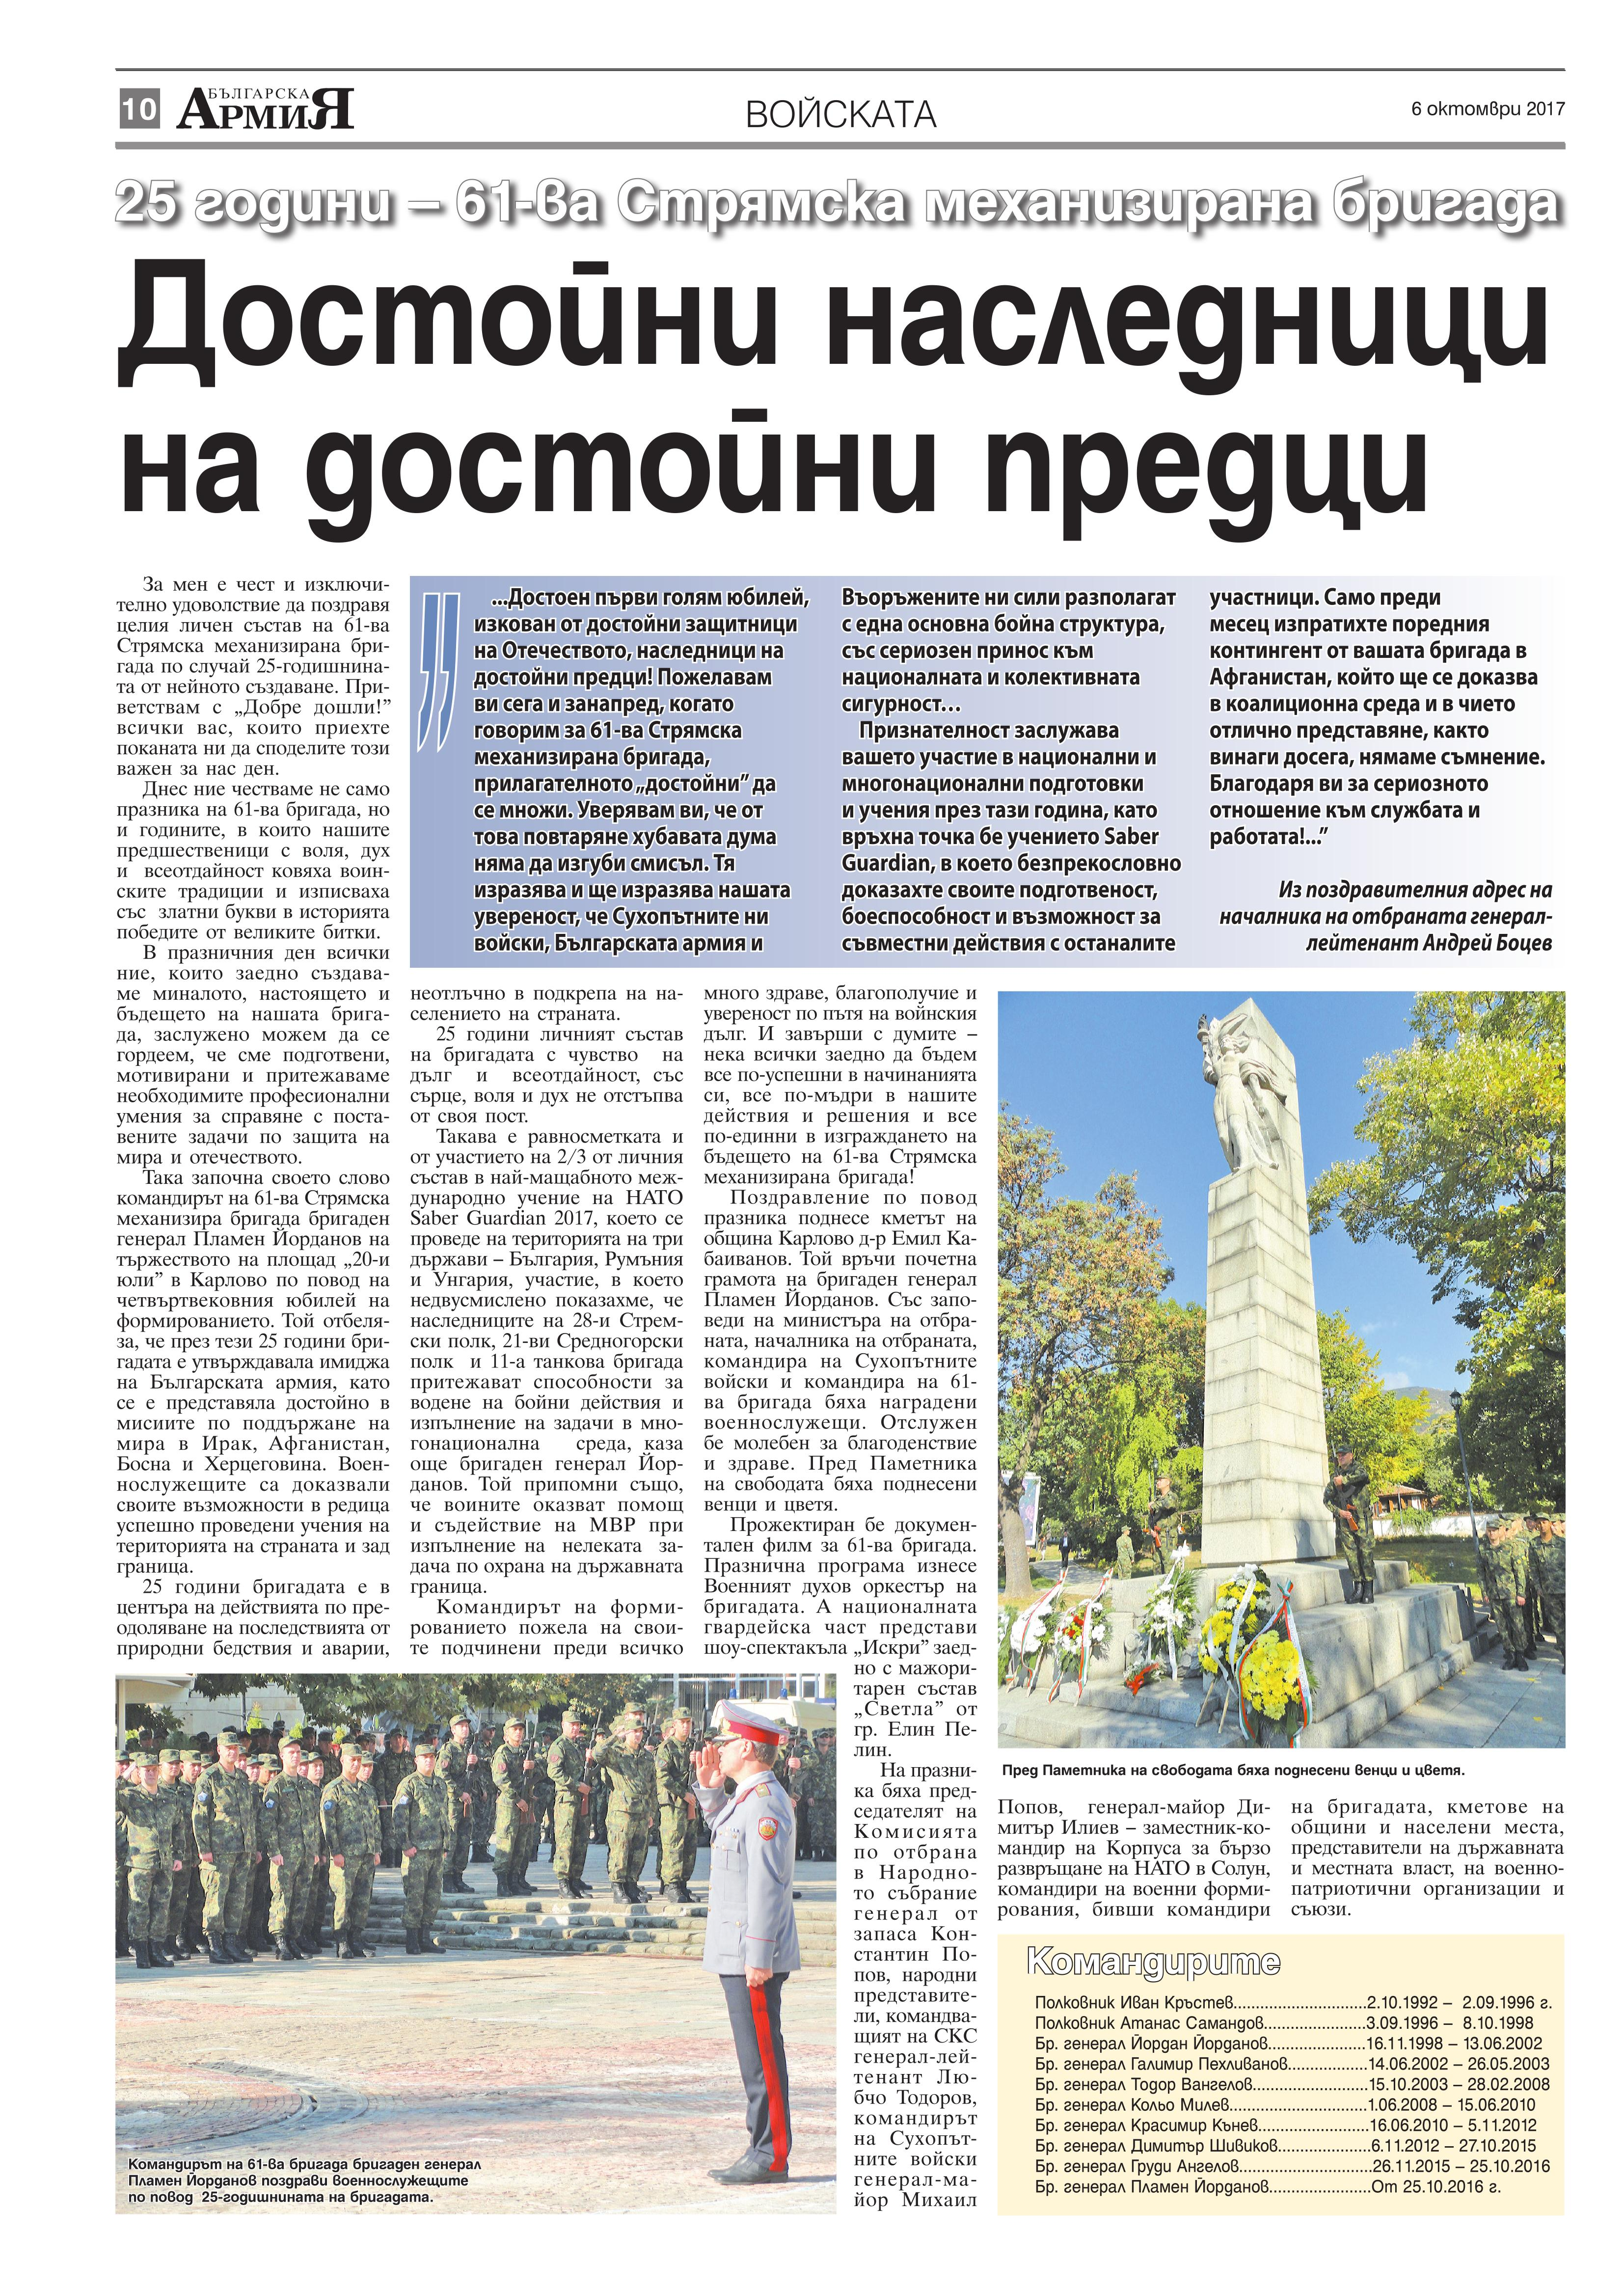 http://armymedia.bg/wp-content/uploads/2015/06/10.page1_-33.jpg